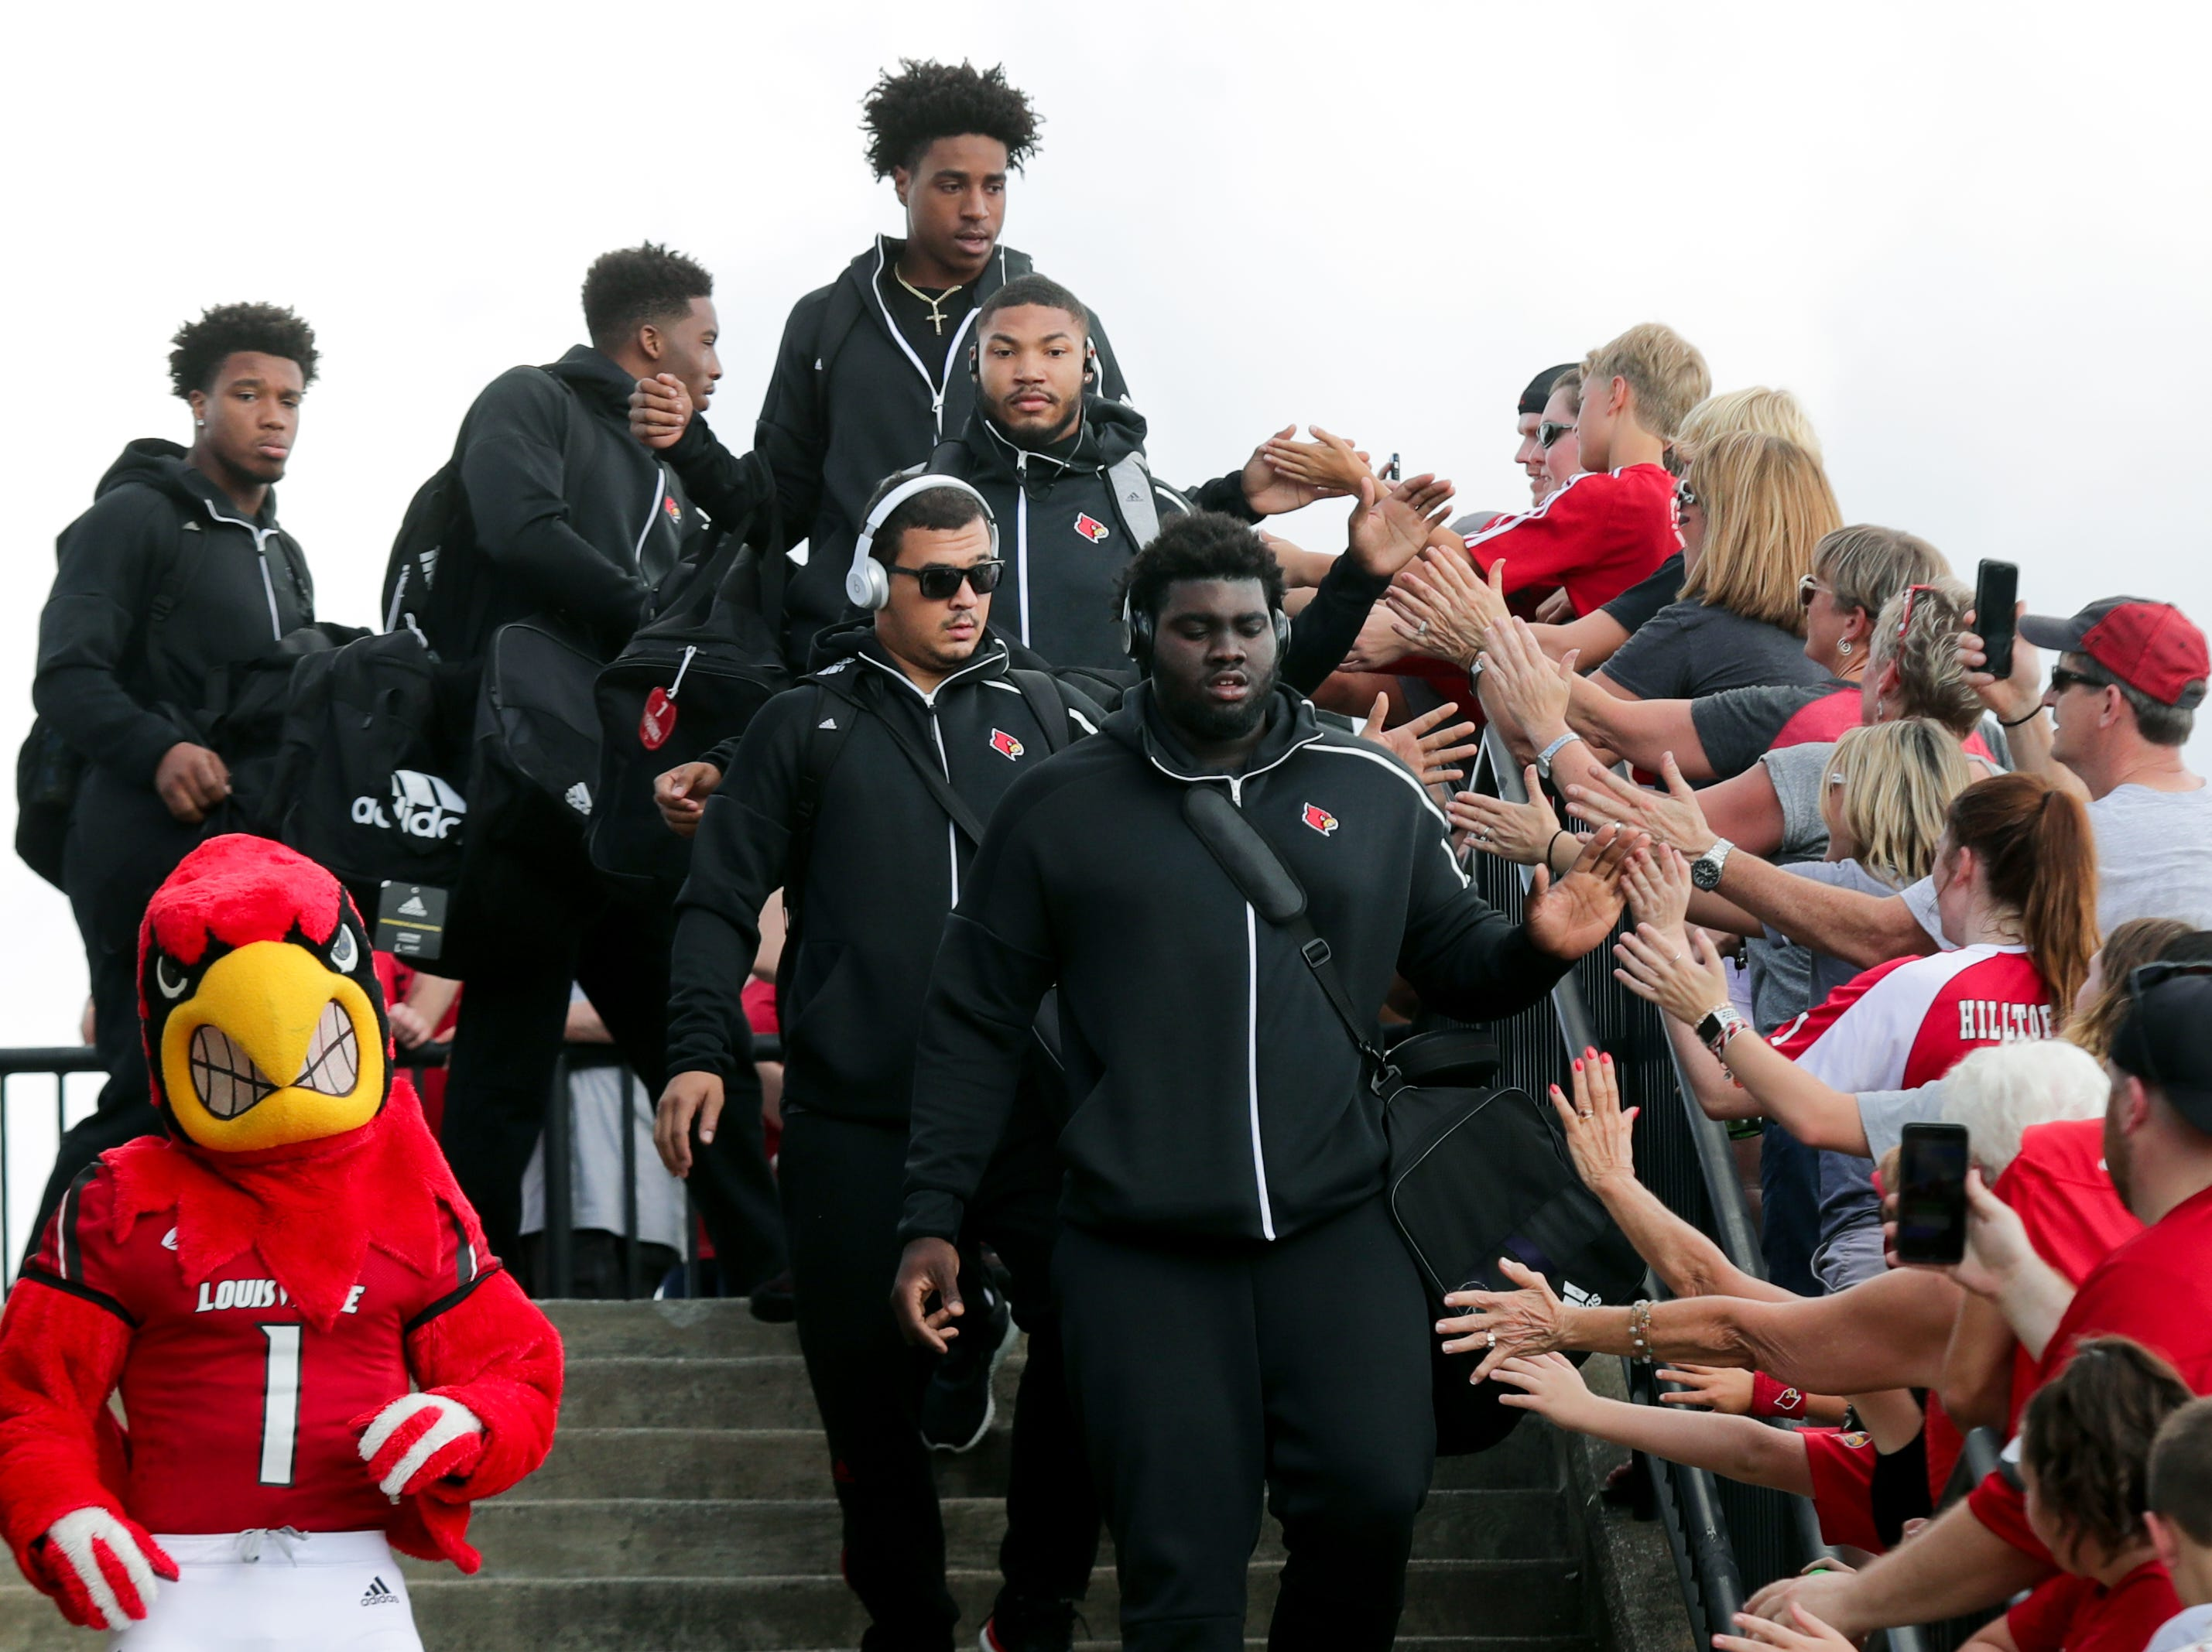 Fans greet the Louisville football team during the Card March.